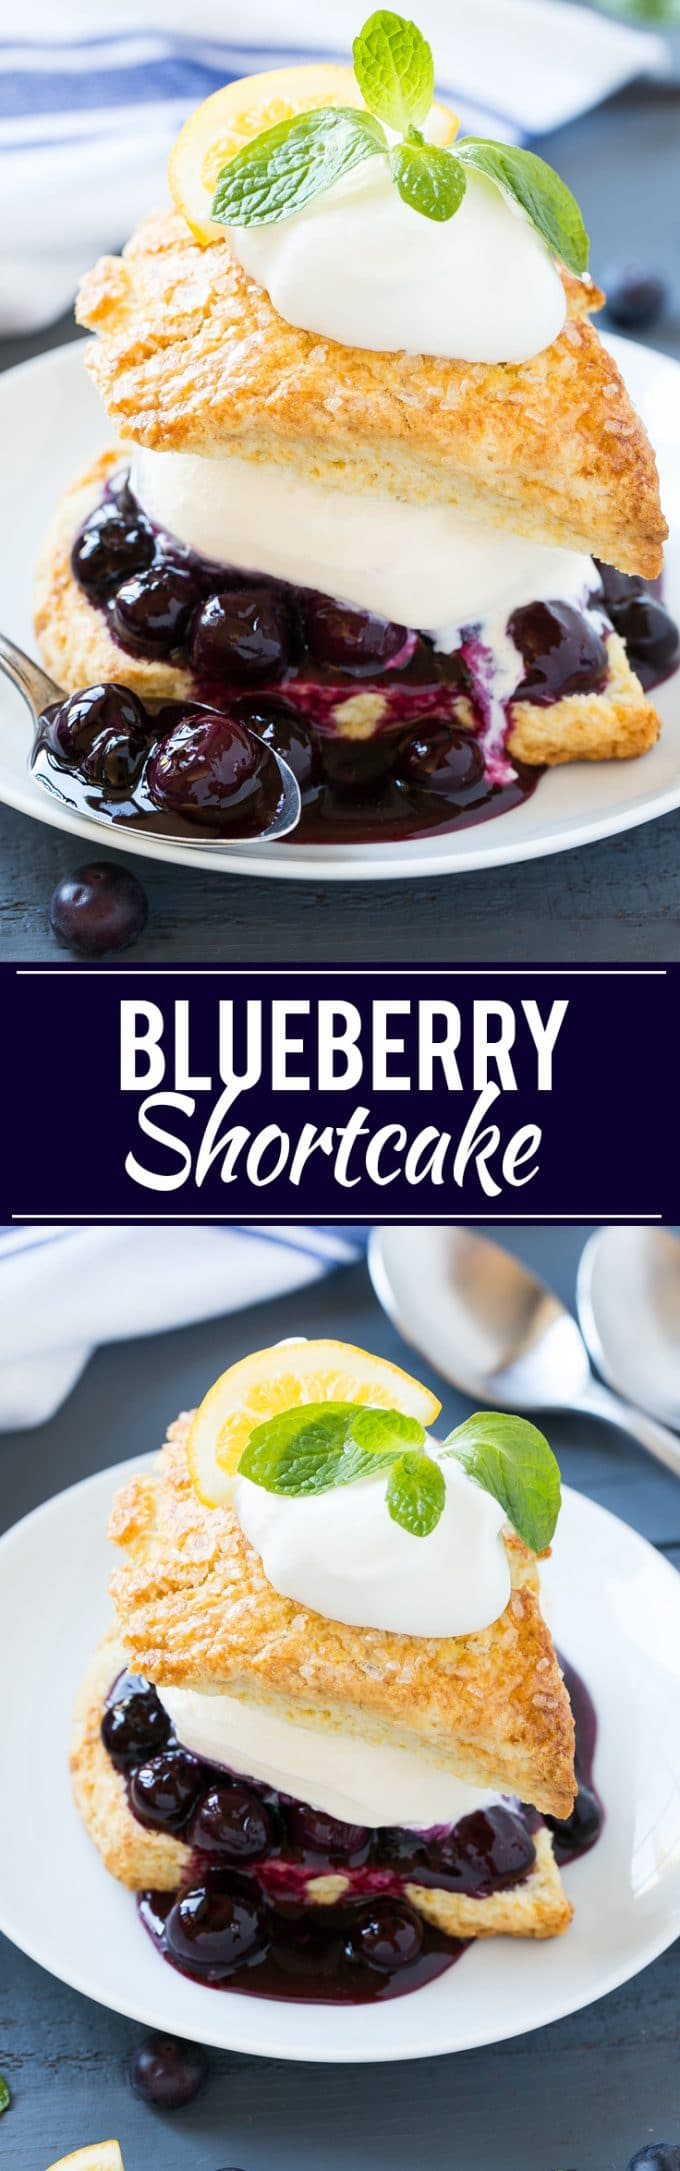 Blueberry Shortcake Recipe | Blueberry Shortcake with Vanilla Ice Cream | Easy Shortcake | Best Shortcake | Blueberry Shortcake